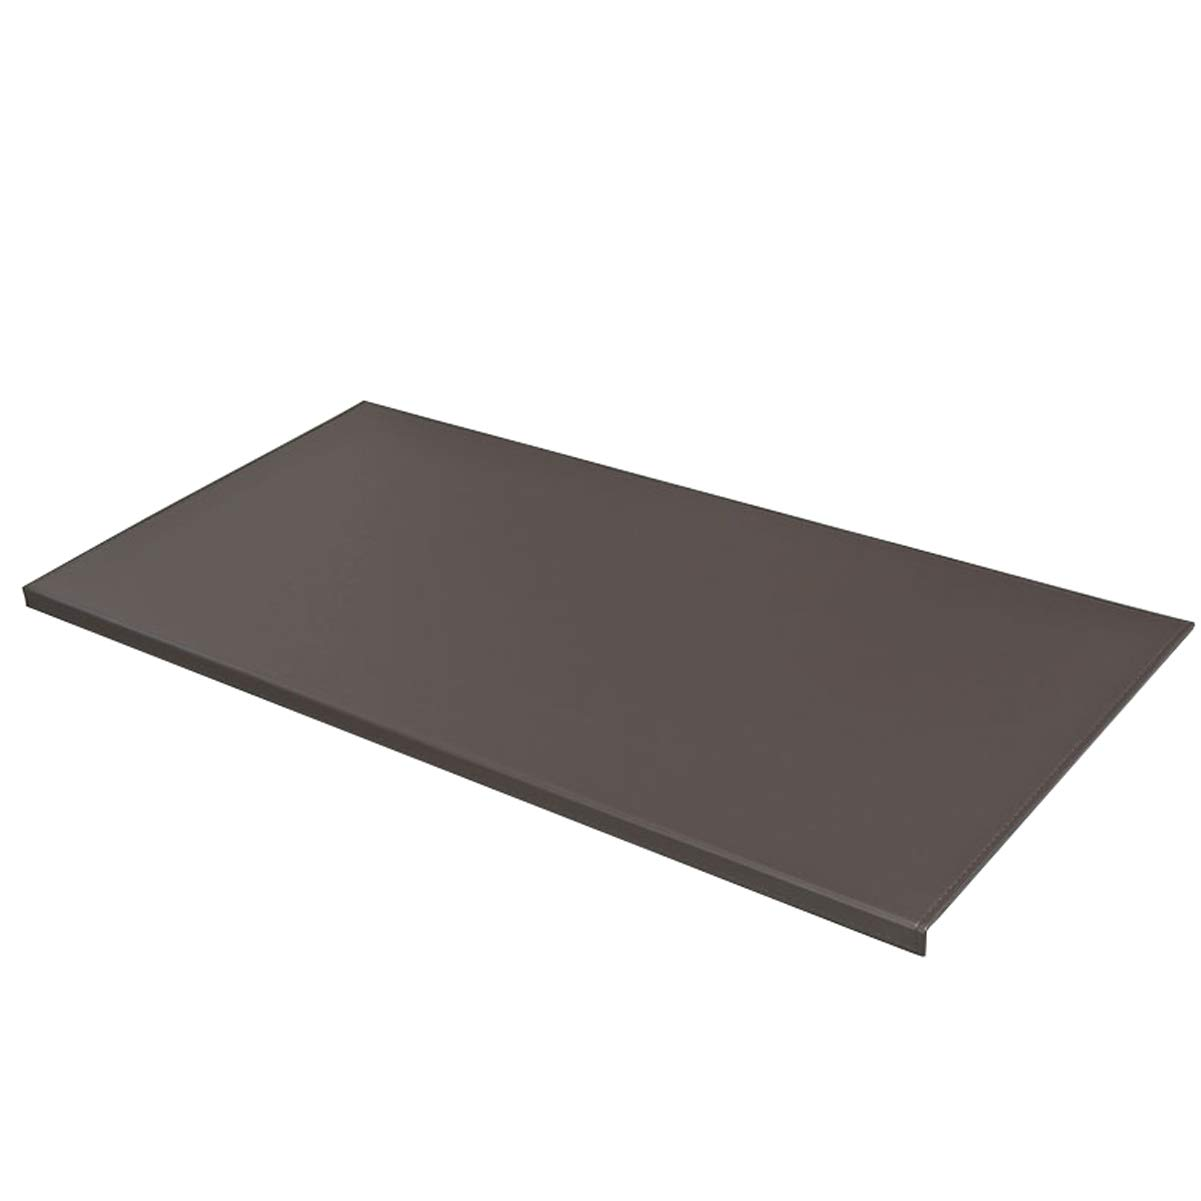 Non-Slip 35.4''x 18.9'' Soft Leather Surface Office Desk Mouse Mat Pad with Full Grip Fixation Lip Table Blotter Protector(Coffee) by BUBM